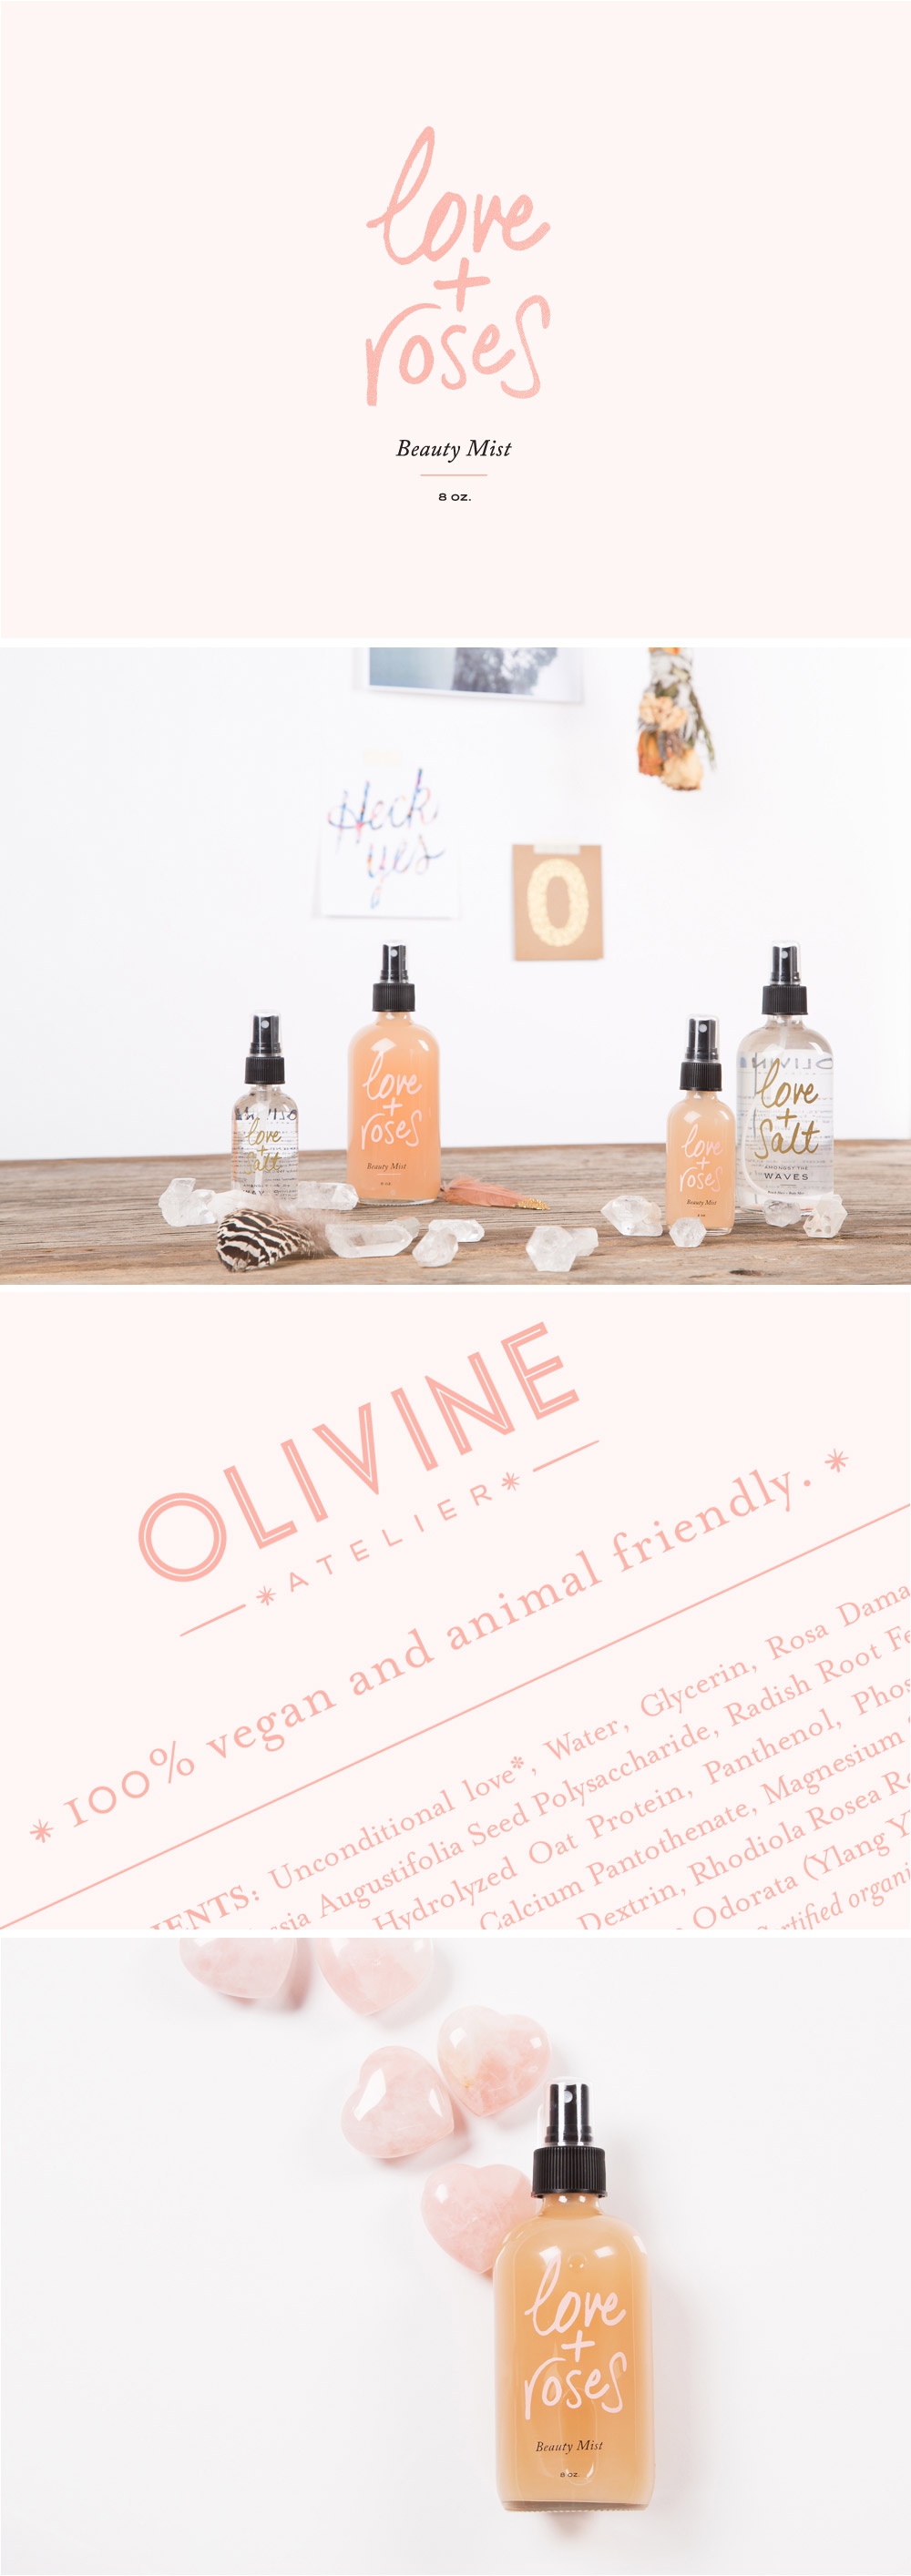 Olivine Atelier Love And Roses Beauty Mist